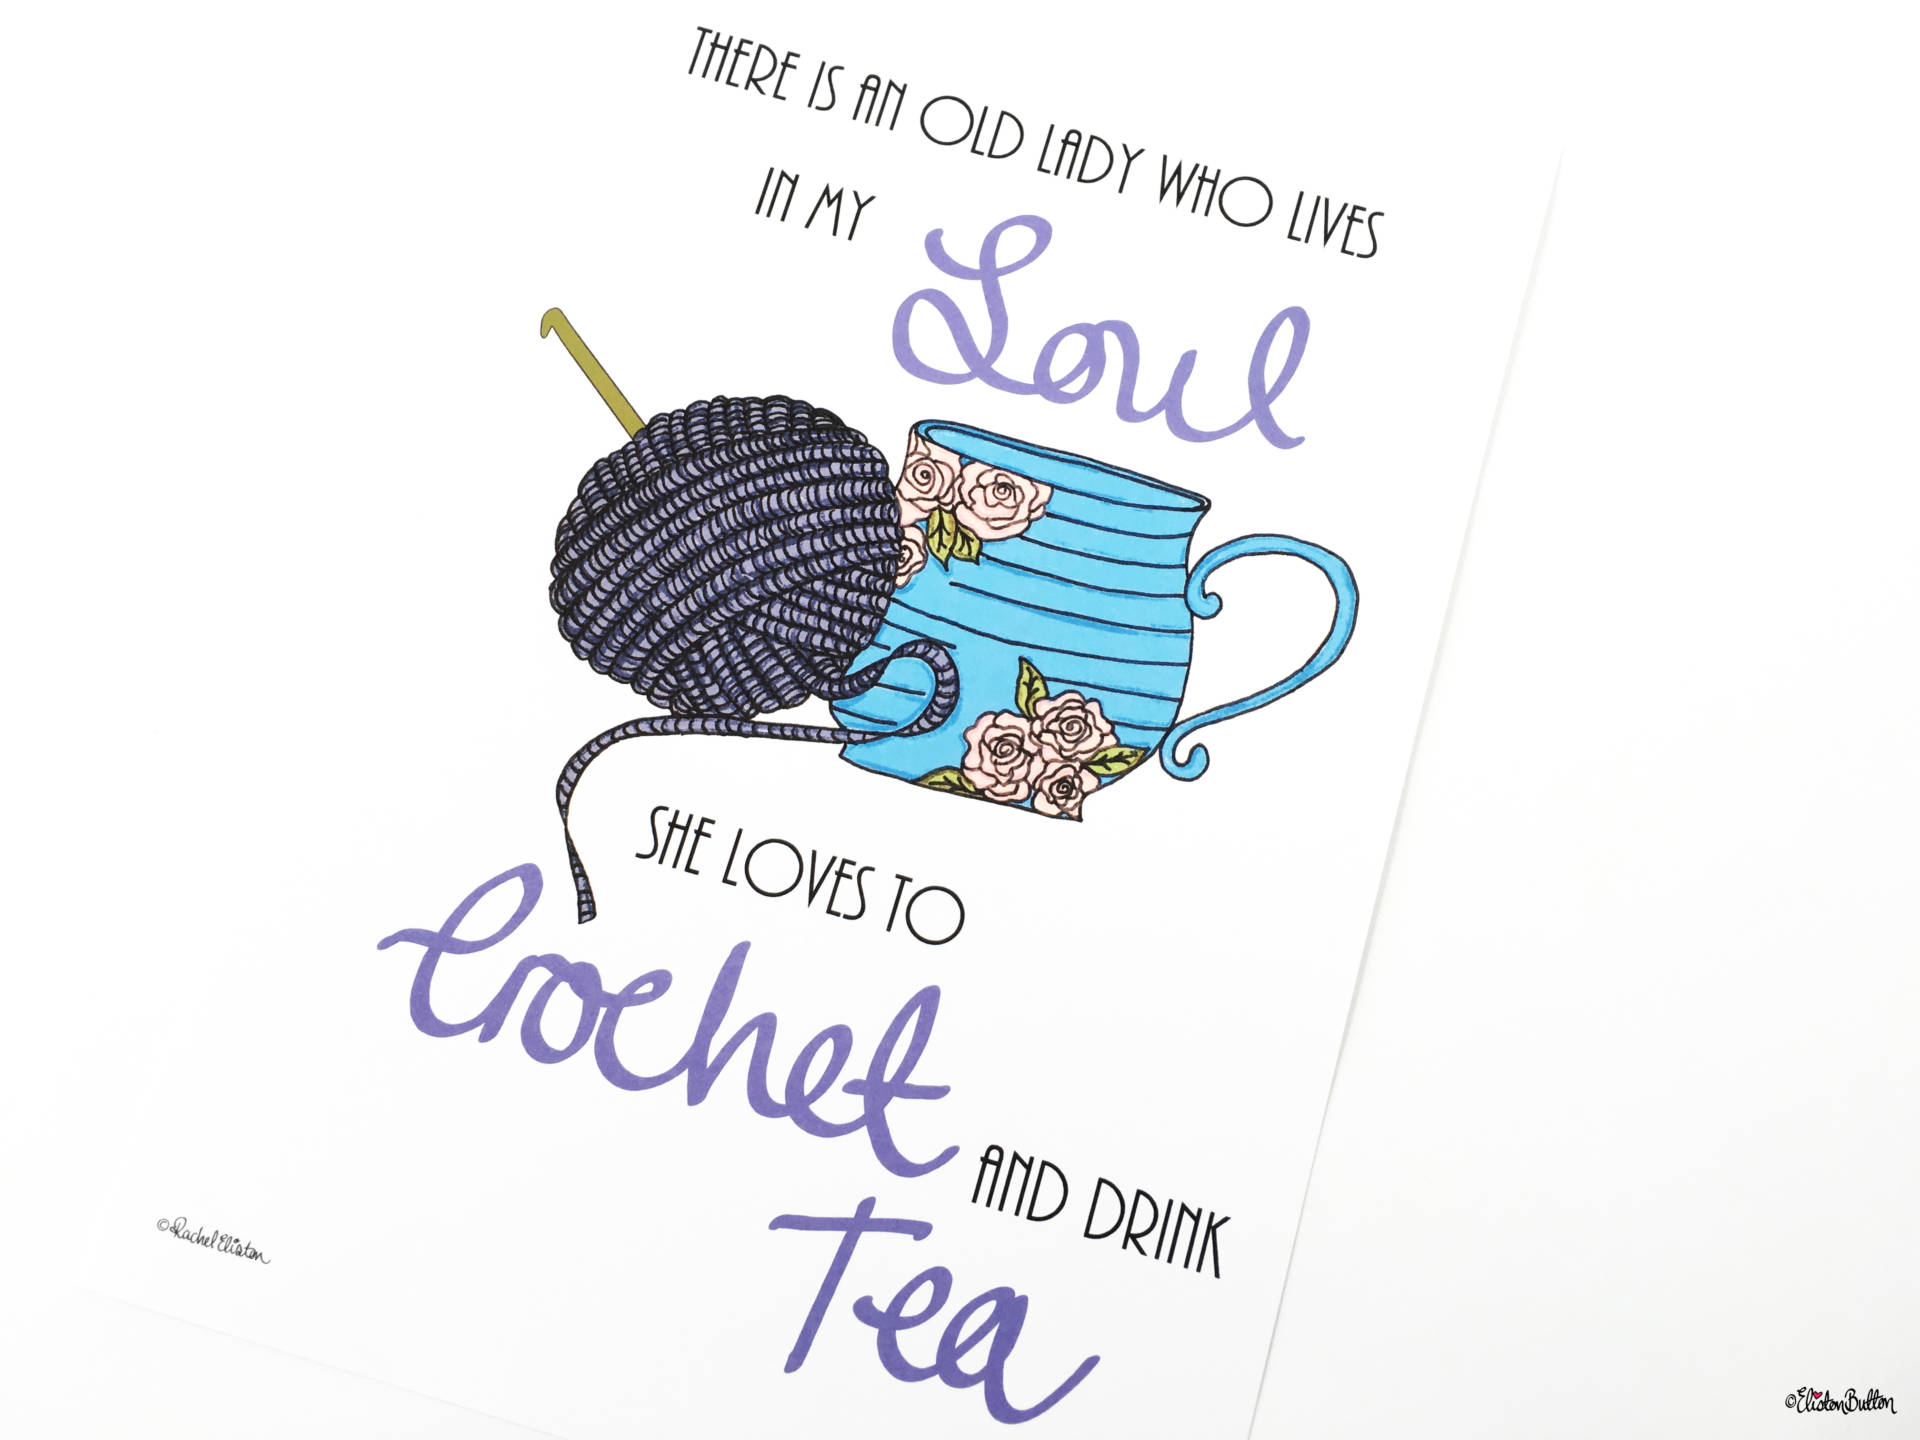 Crochet and Drink Tea Wall Art Print by Eliston Button Angled View - Create 30 – No. 3 & 4 – Crochet Illustrated Quote Prints at www.elistonbutton.com - Eliston Button - That Crafty Kid – Art, Design, Craft & Adventure.